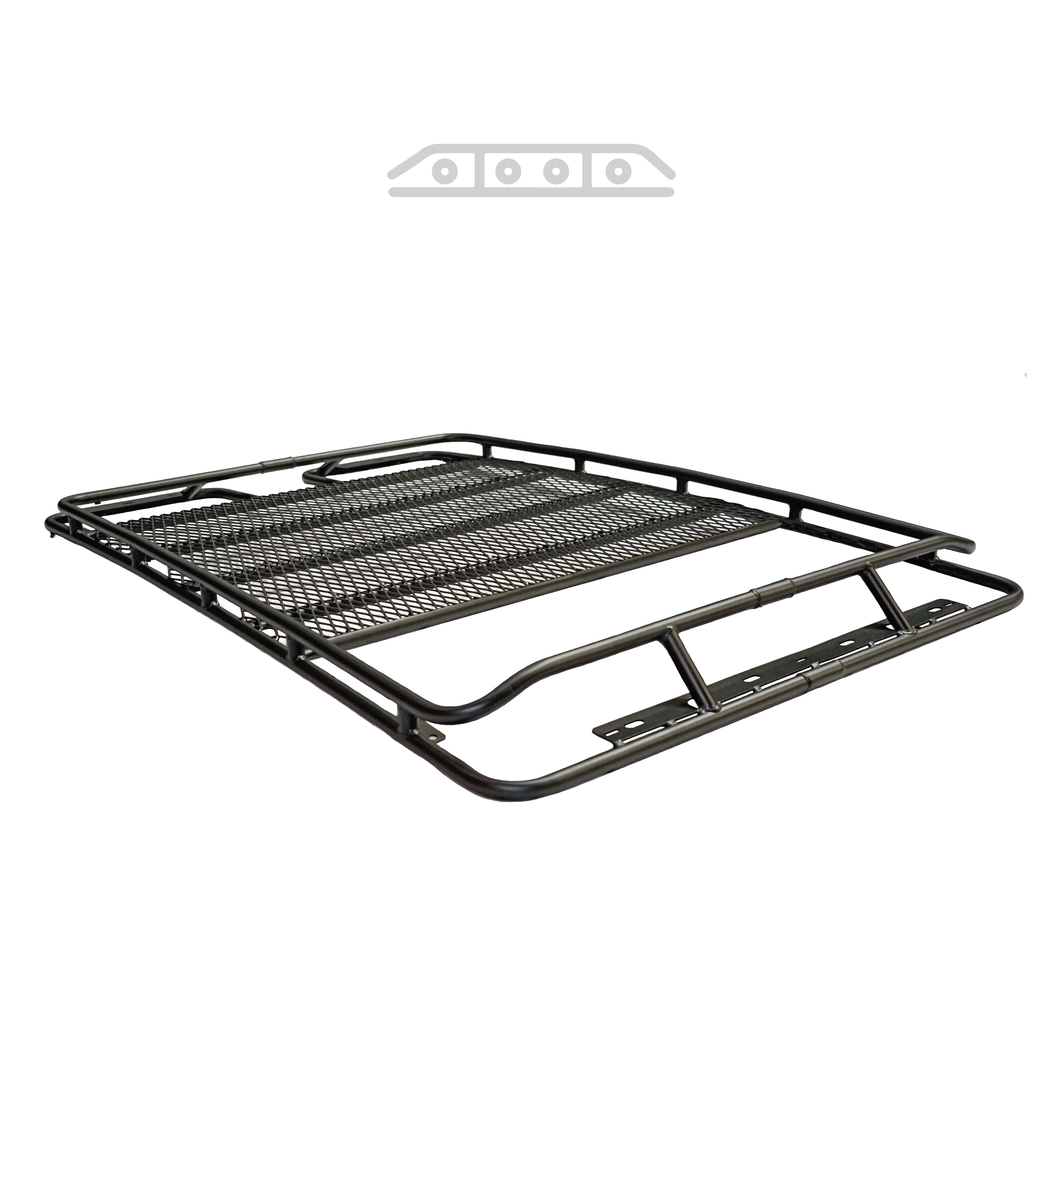 JEEP CHEROKEE KL· STEALTH RACK · Multi-Light Setup· WITH